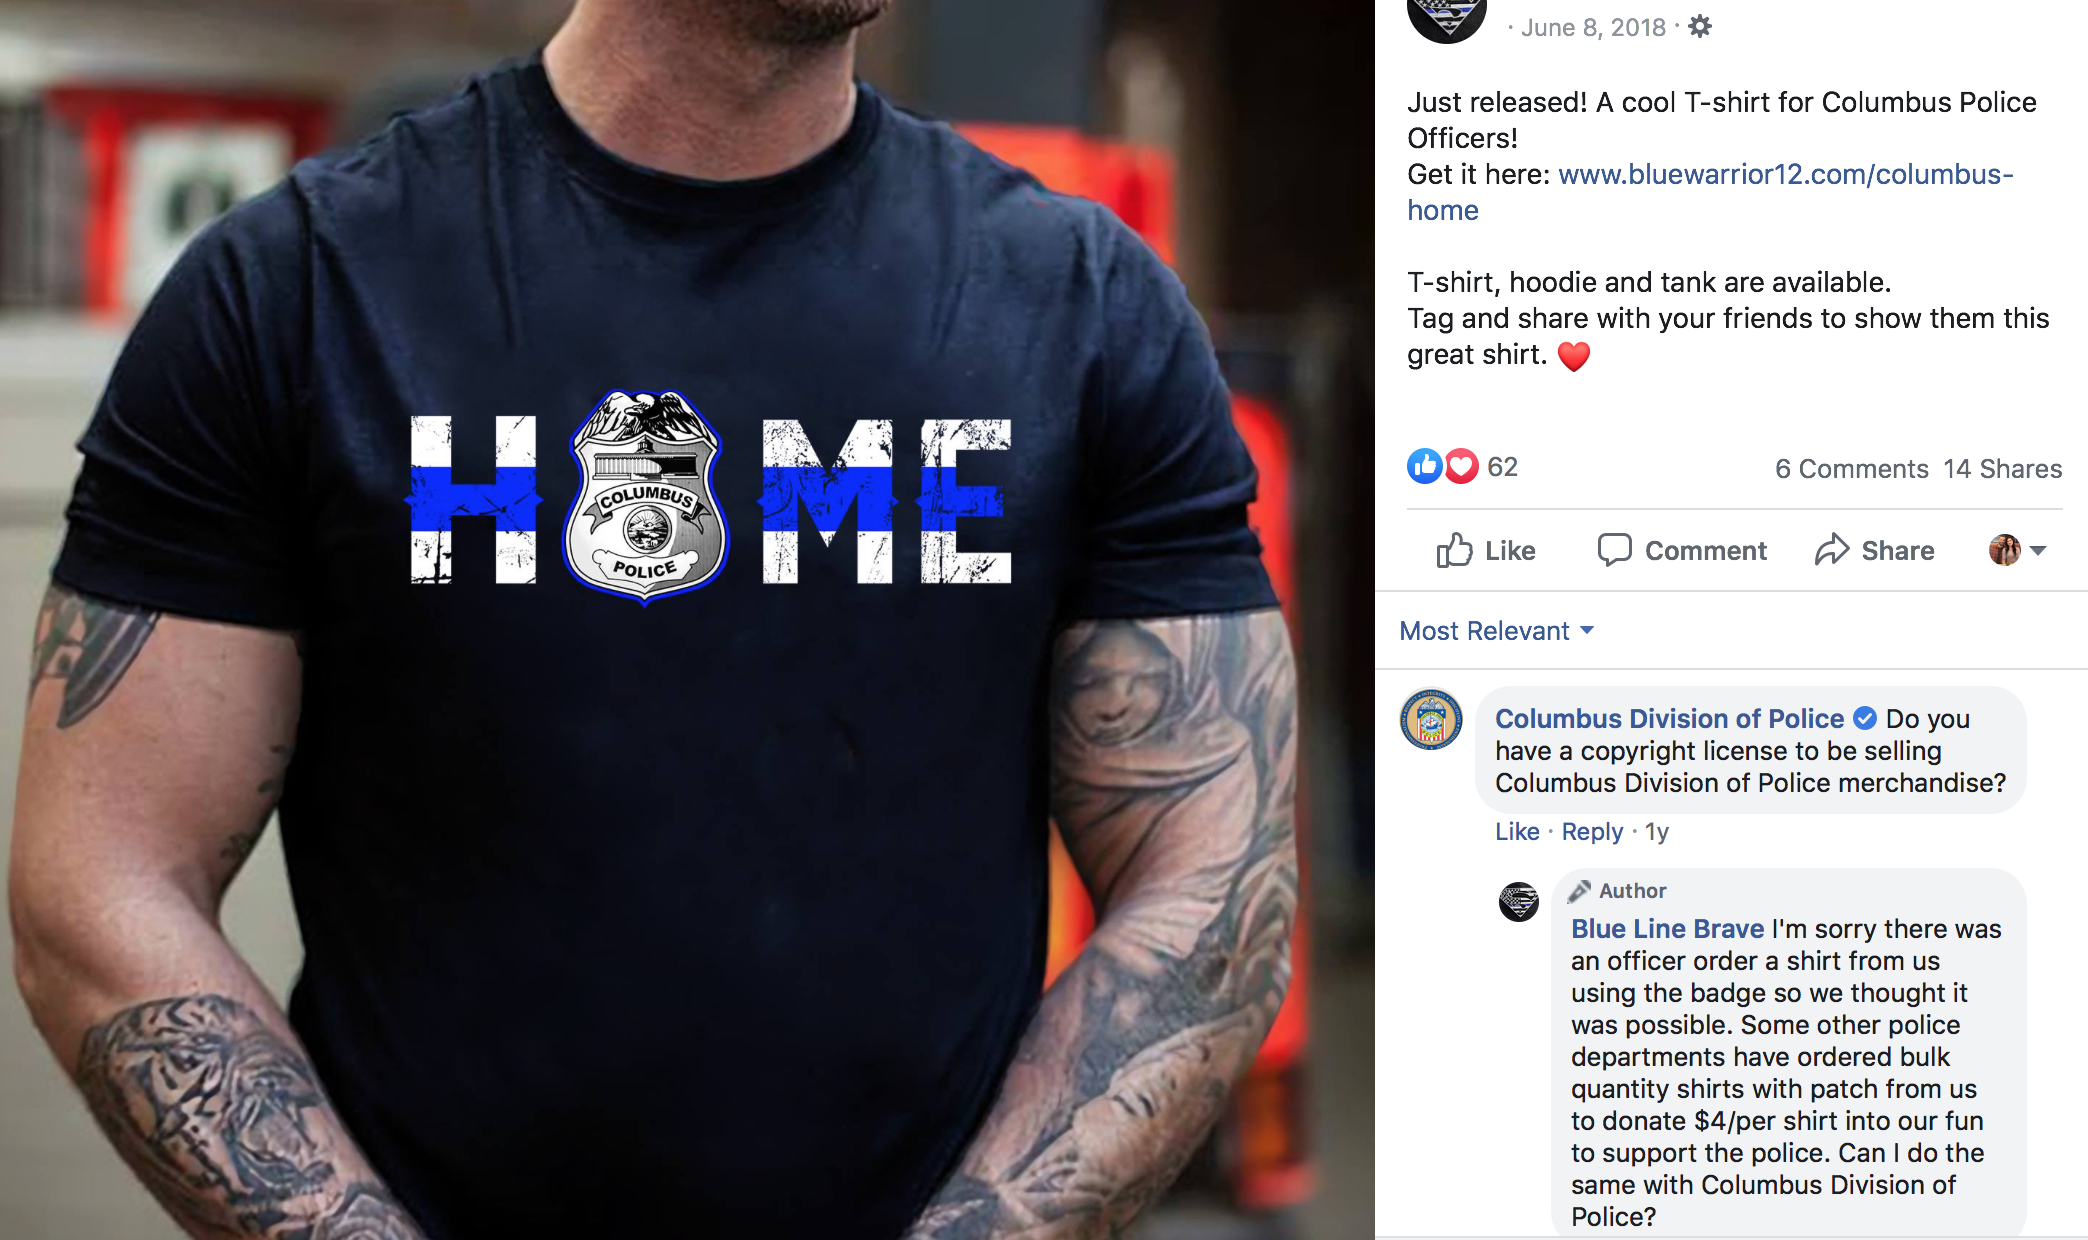 Source: Company selling shirts in memory of fallen officers, lying about donating to charity